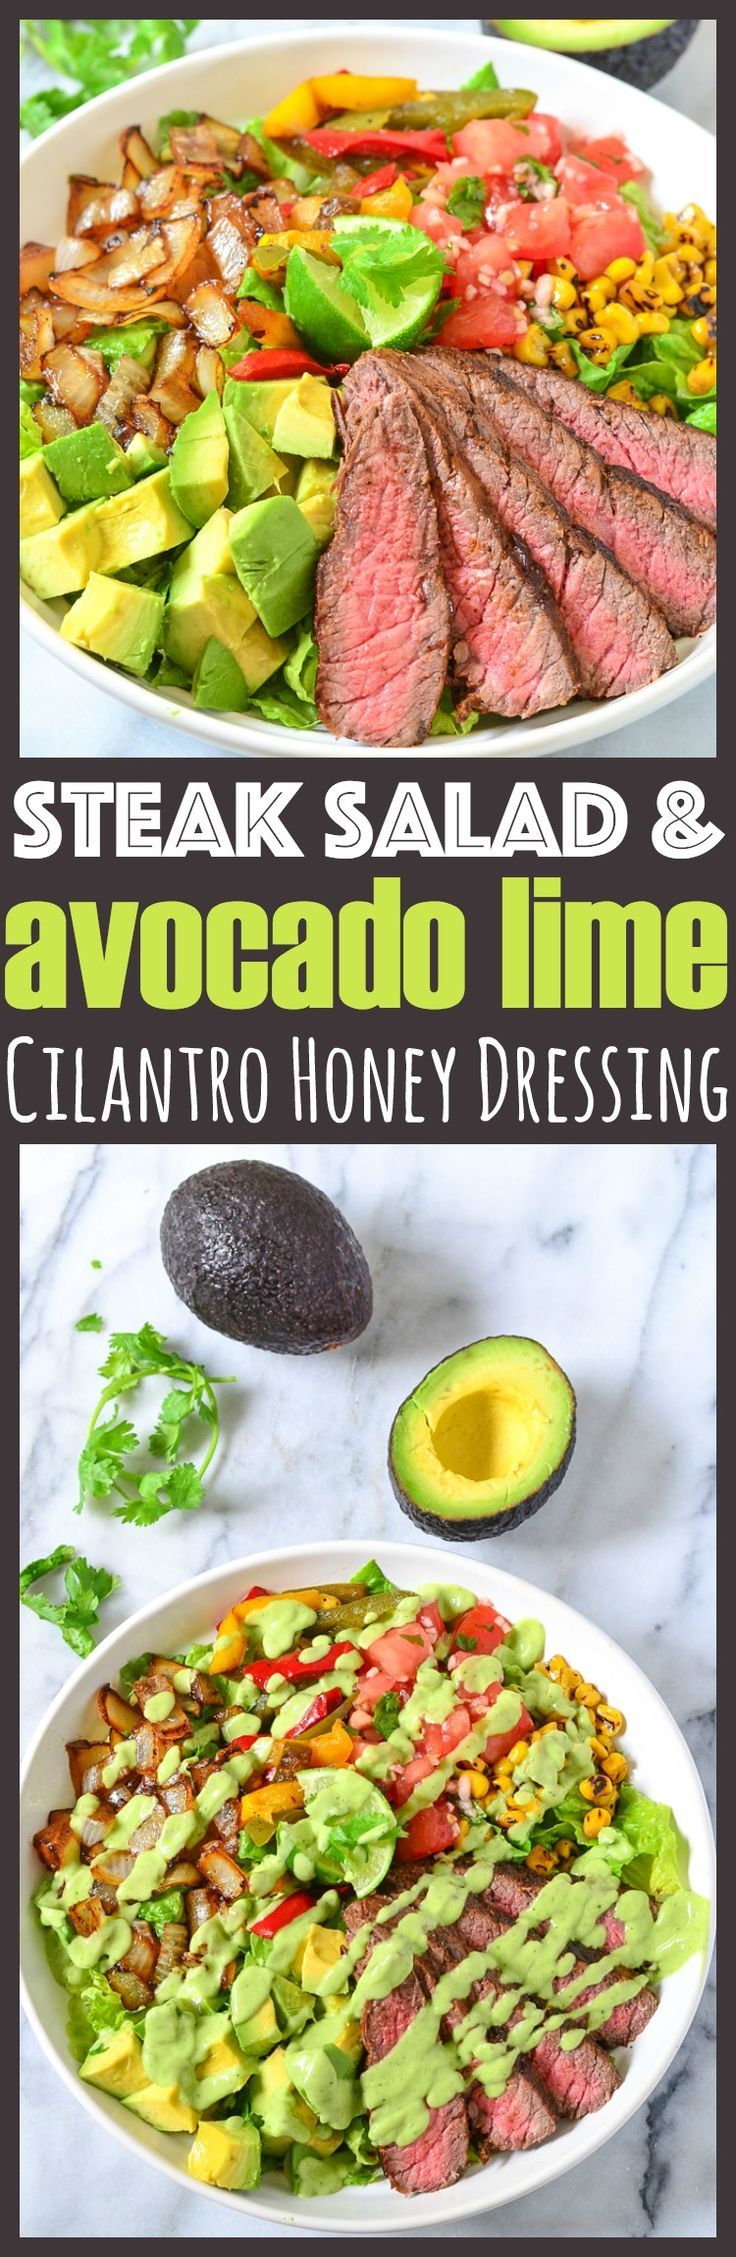 Avocado Steak Salad With Homemade Avocado Lime Cilantro Honey Dressing Recipe.